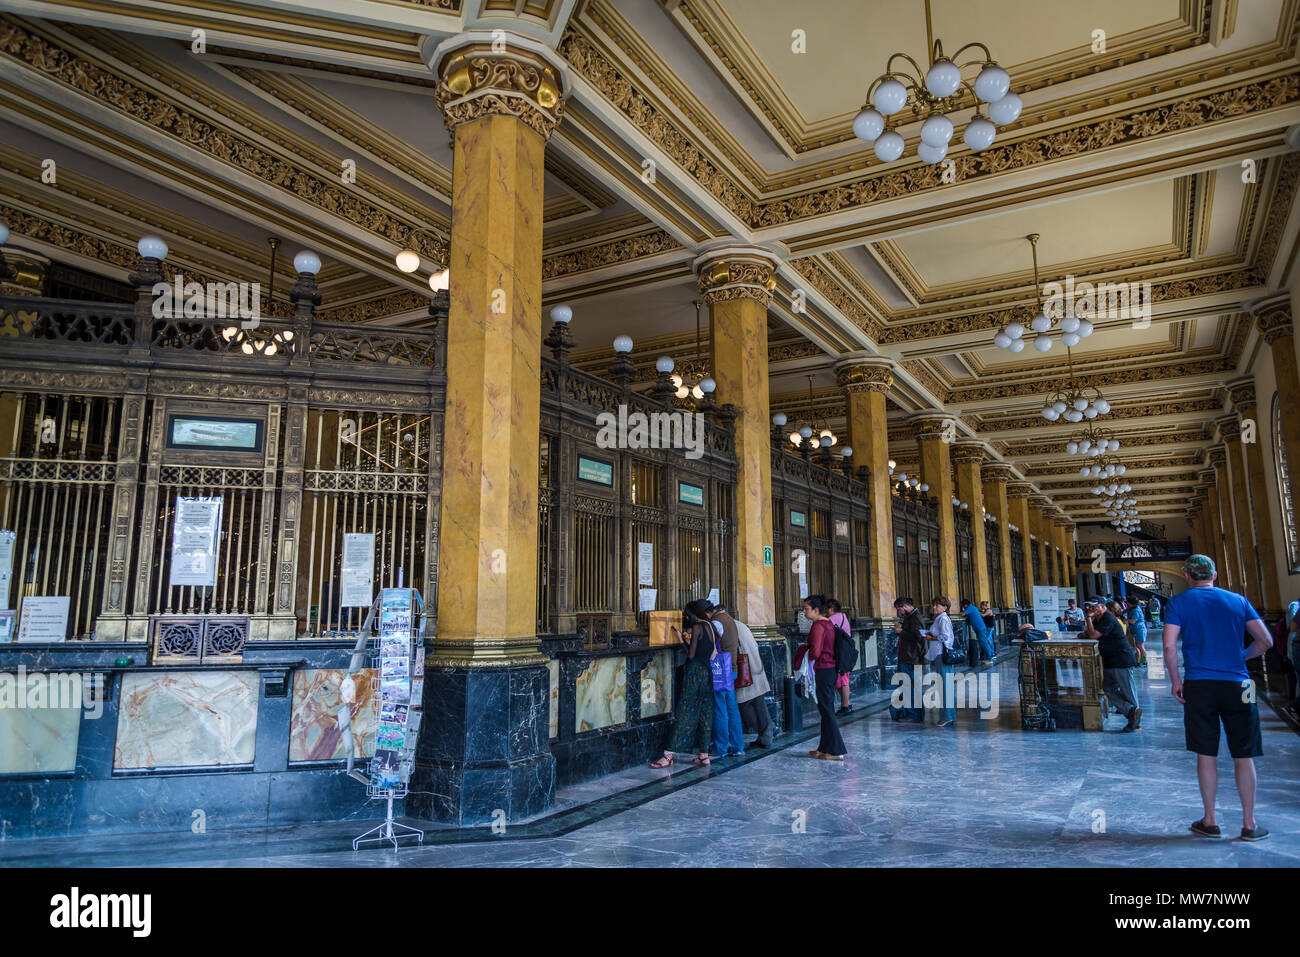 Postal Palace of Mexico City, also known as the 'Correo Mayor' or Main Post Office, service windows, Mexico City, Mexico - Stock Image